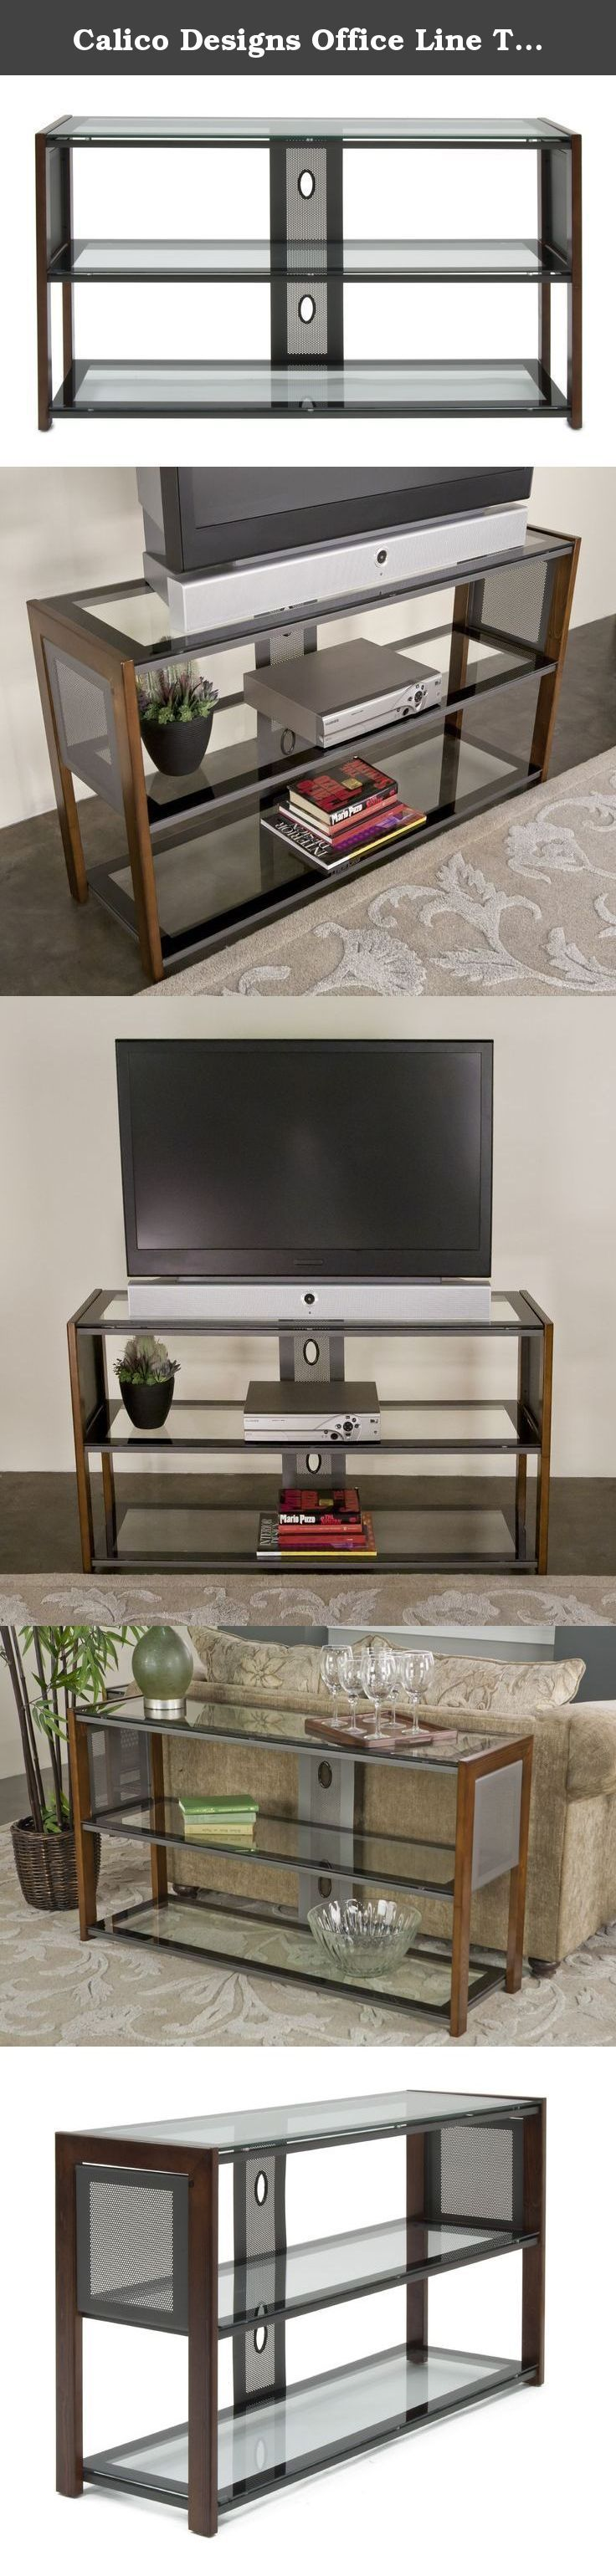 """Calico Designs Office Line TV Stand in Sonoma Brown 56007. Reintroducing Studio Designs' Flat Files: Five slide-out drawers are designed for accessible active or archival storage. Features a durable steel frame construction and steel roller guides for smooth and easy operation. An interior steel flap panel in each drawer keep files neat and orderly. Overall dimensions: 40.75""""W x 28.5""""D x 15.5""""H. Drawer dimensions: 37.25""""W x 25.75""""D x 1.75''H."""